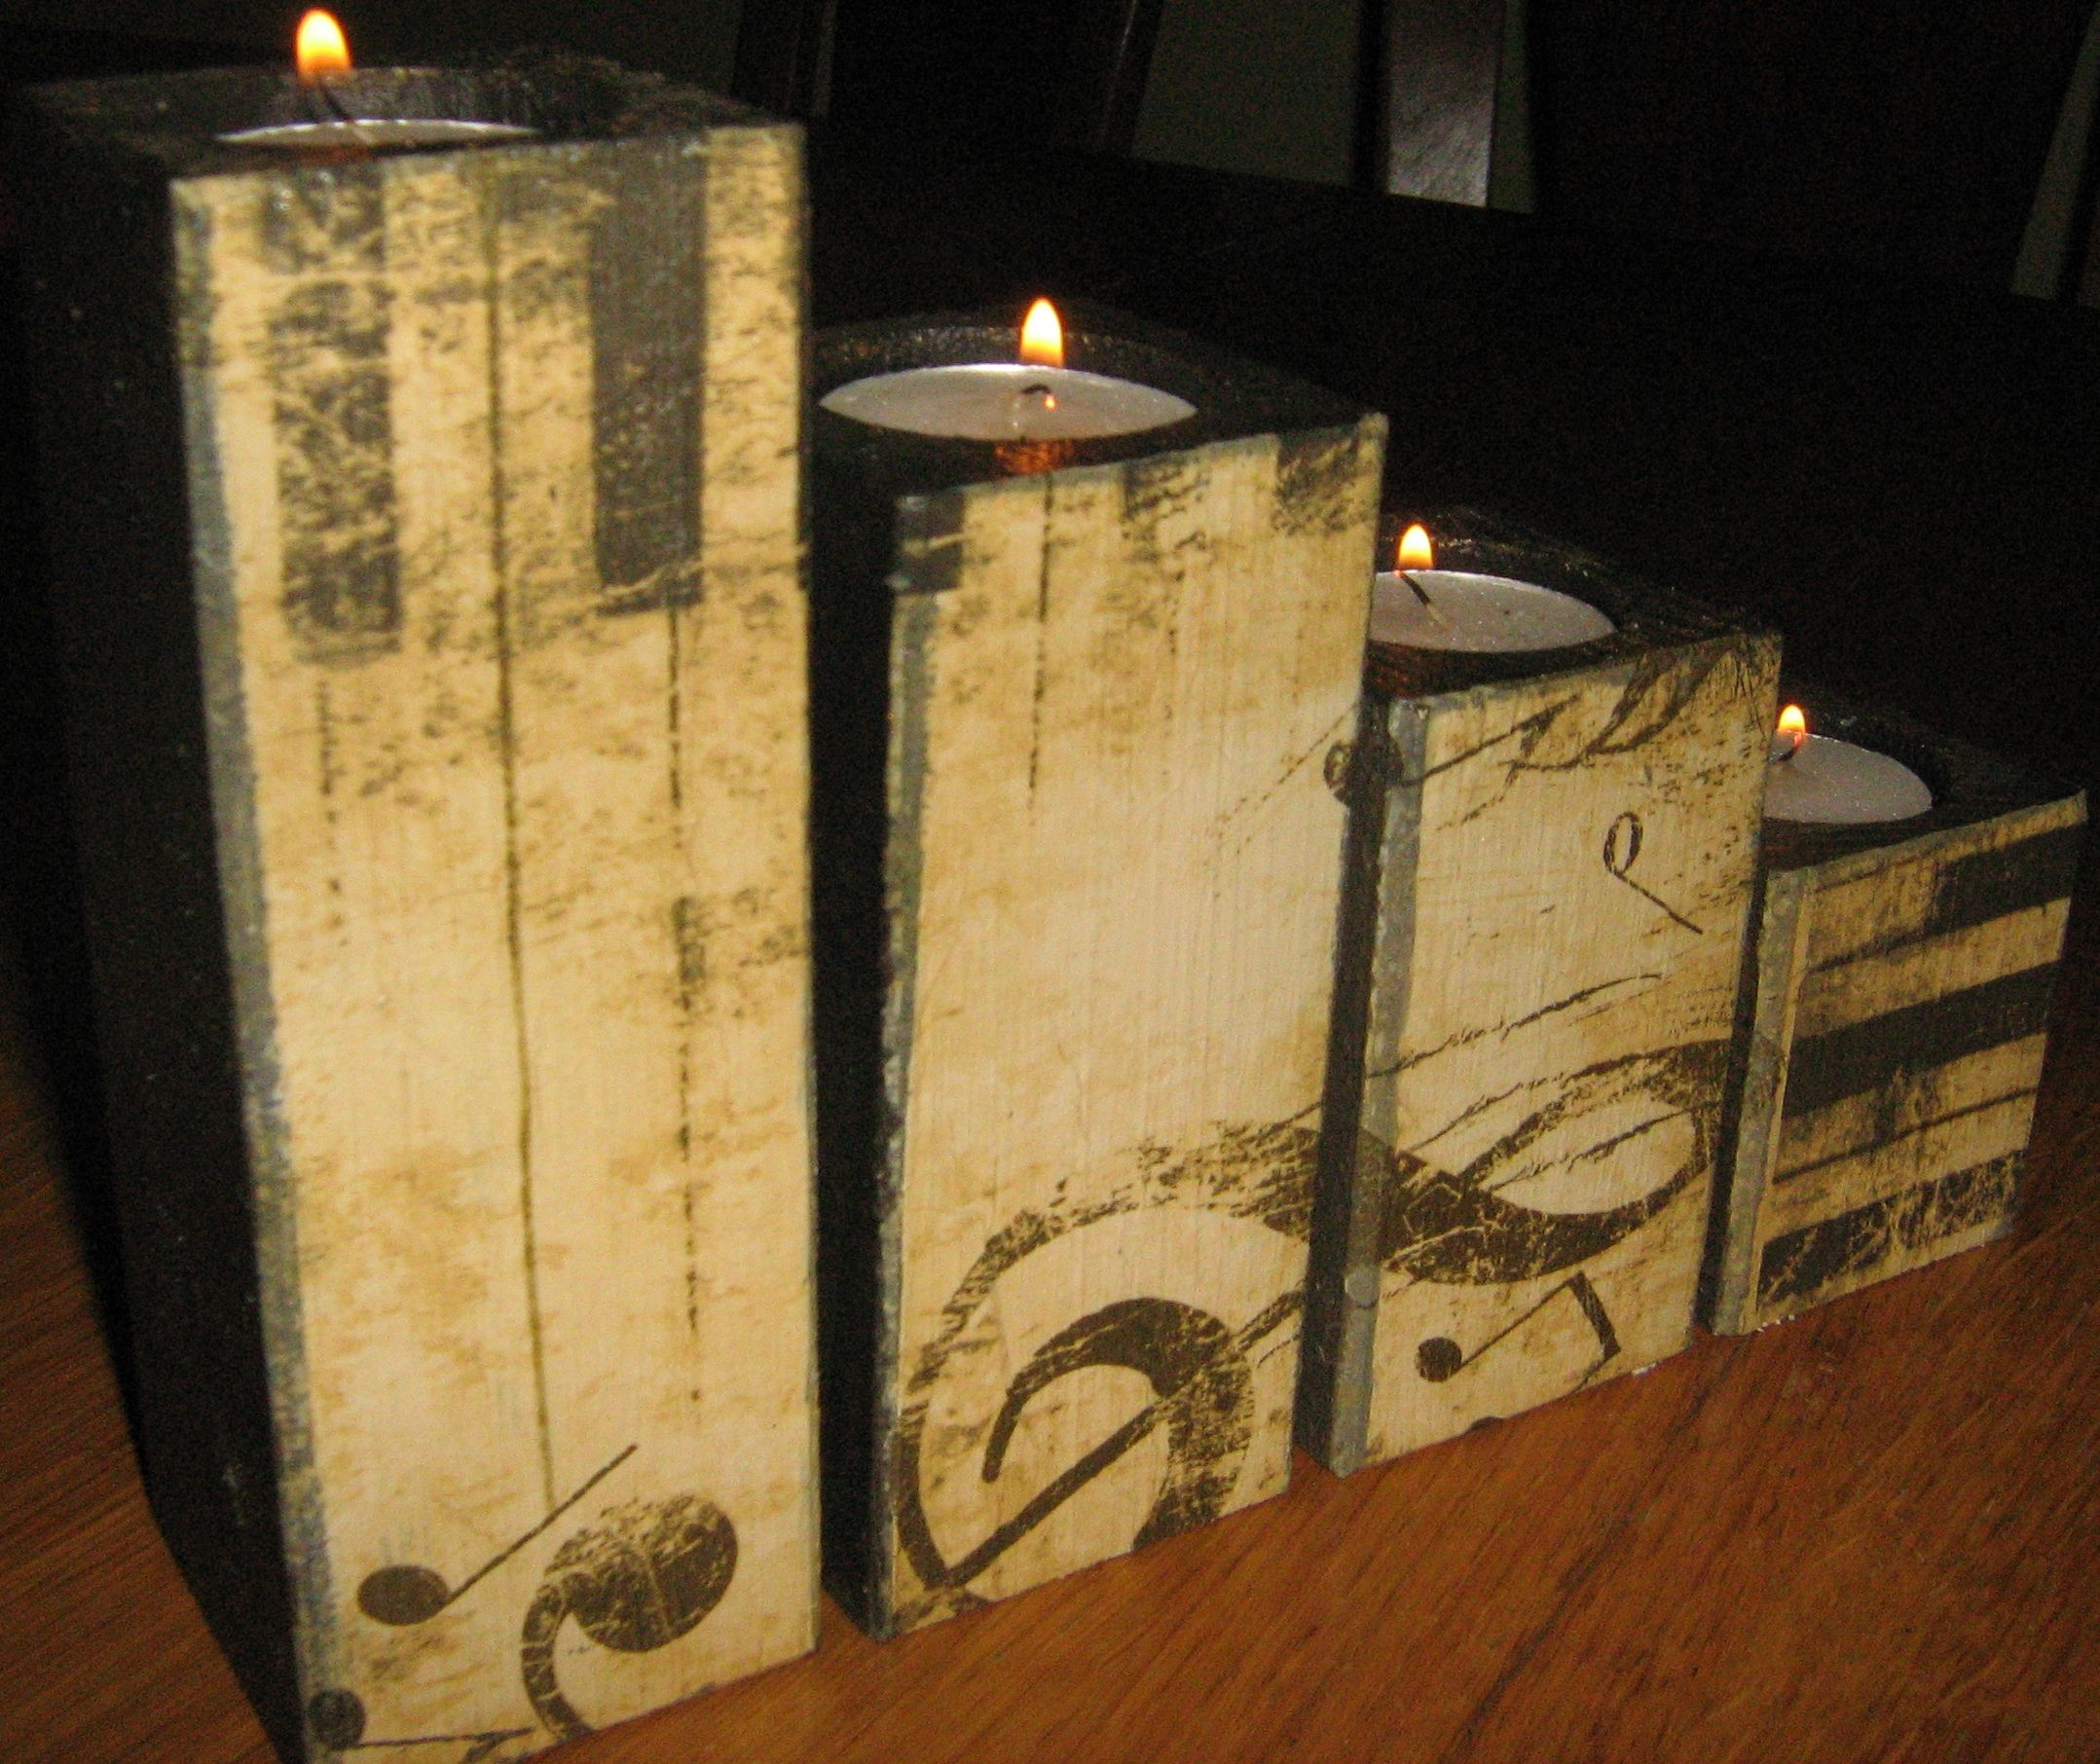 Decoupage Candle Holder Wooden Candle Holders Decoupage Candle Holder Wood Candle Holders